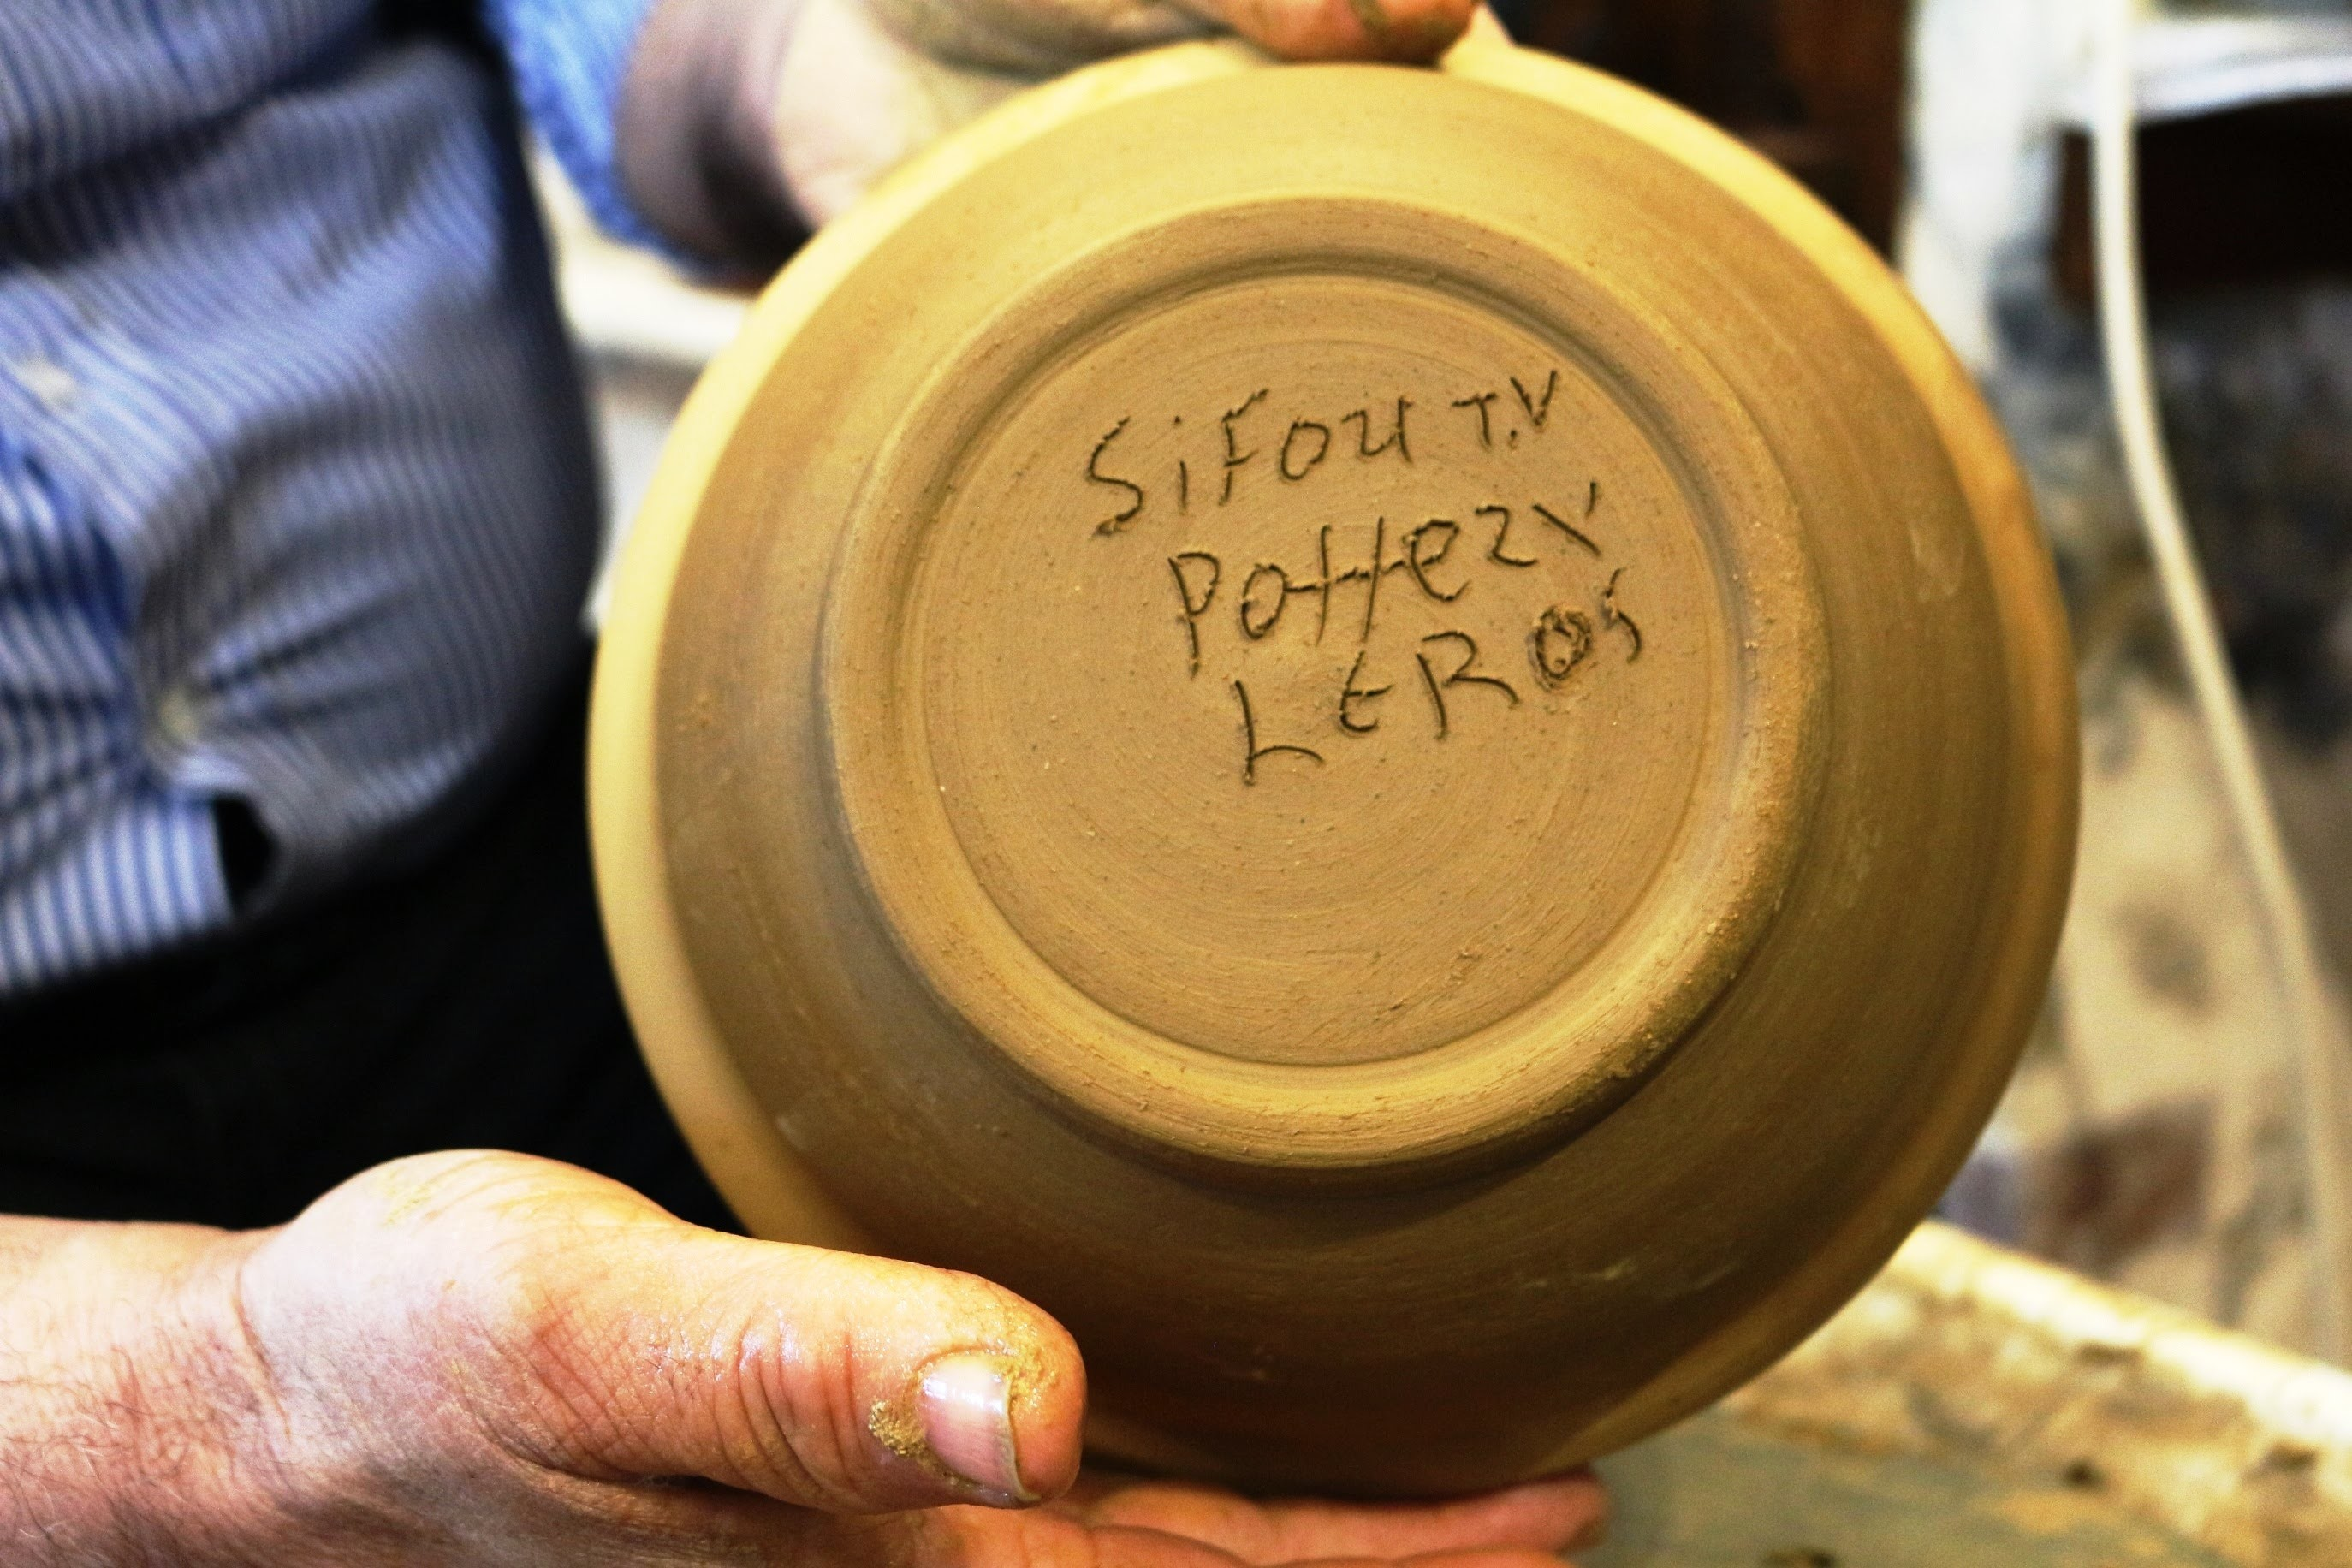 Pottery Trimming a Bowl - How to Trim a Clay Bowl with Sifoutv Pottery #59